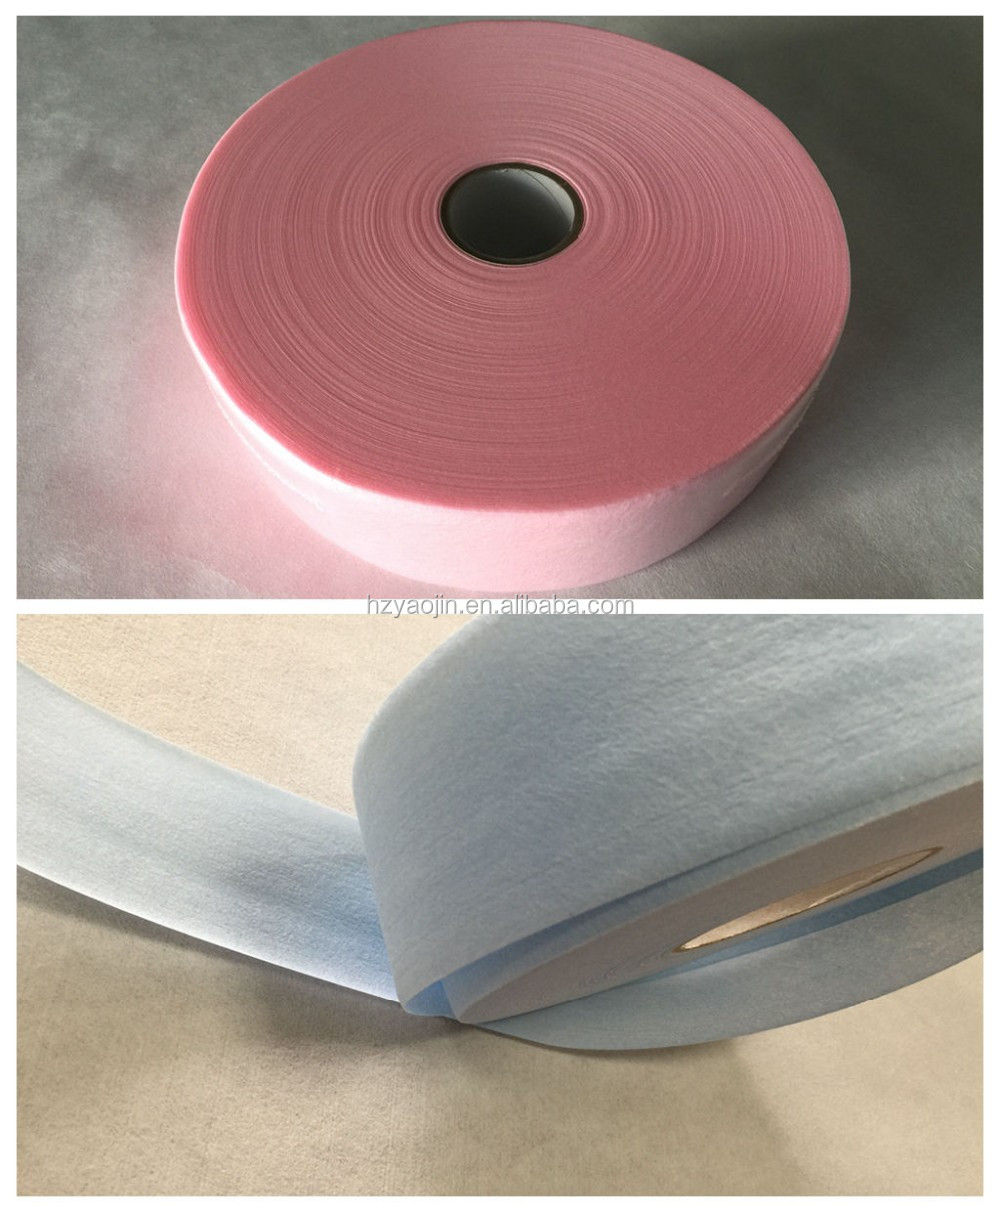 2016 hot sell nonwoven wax roll for epilation 100yarn